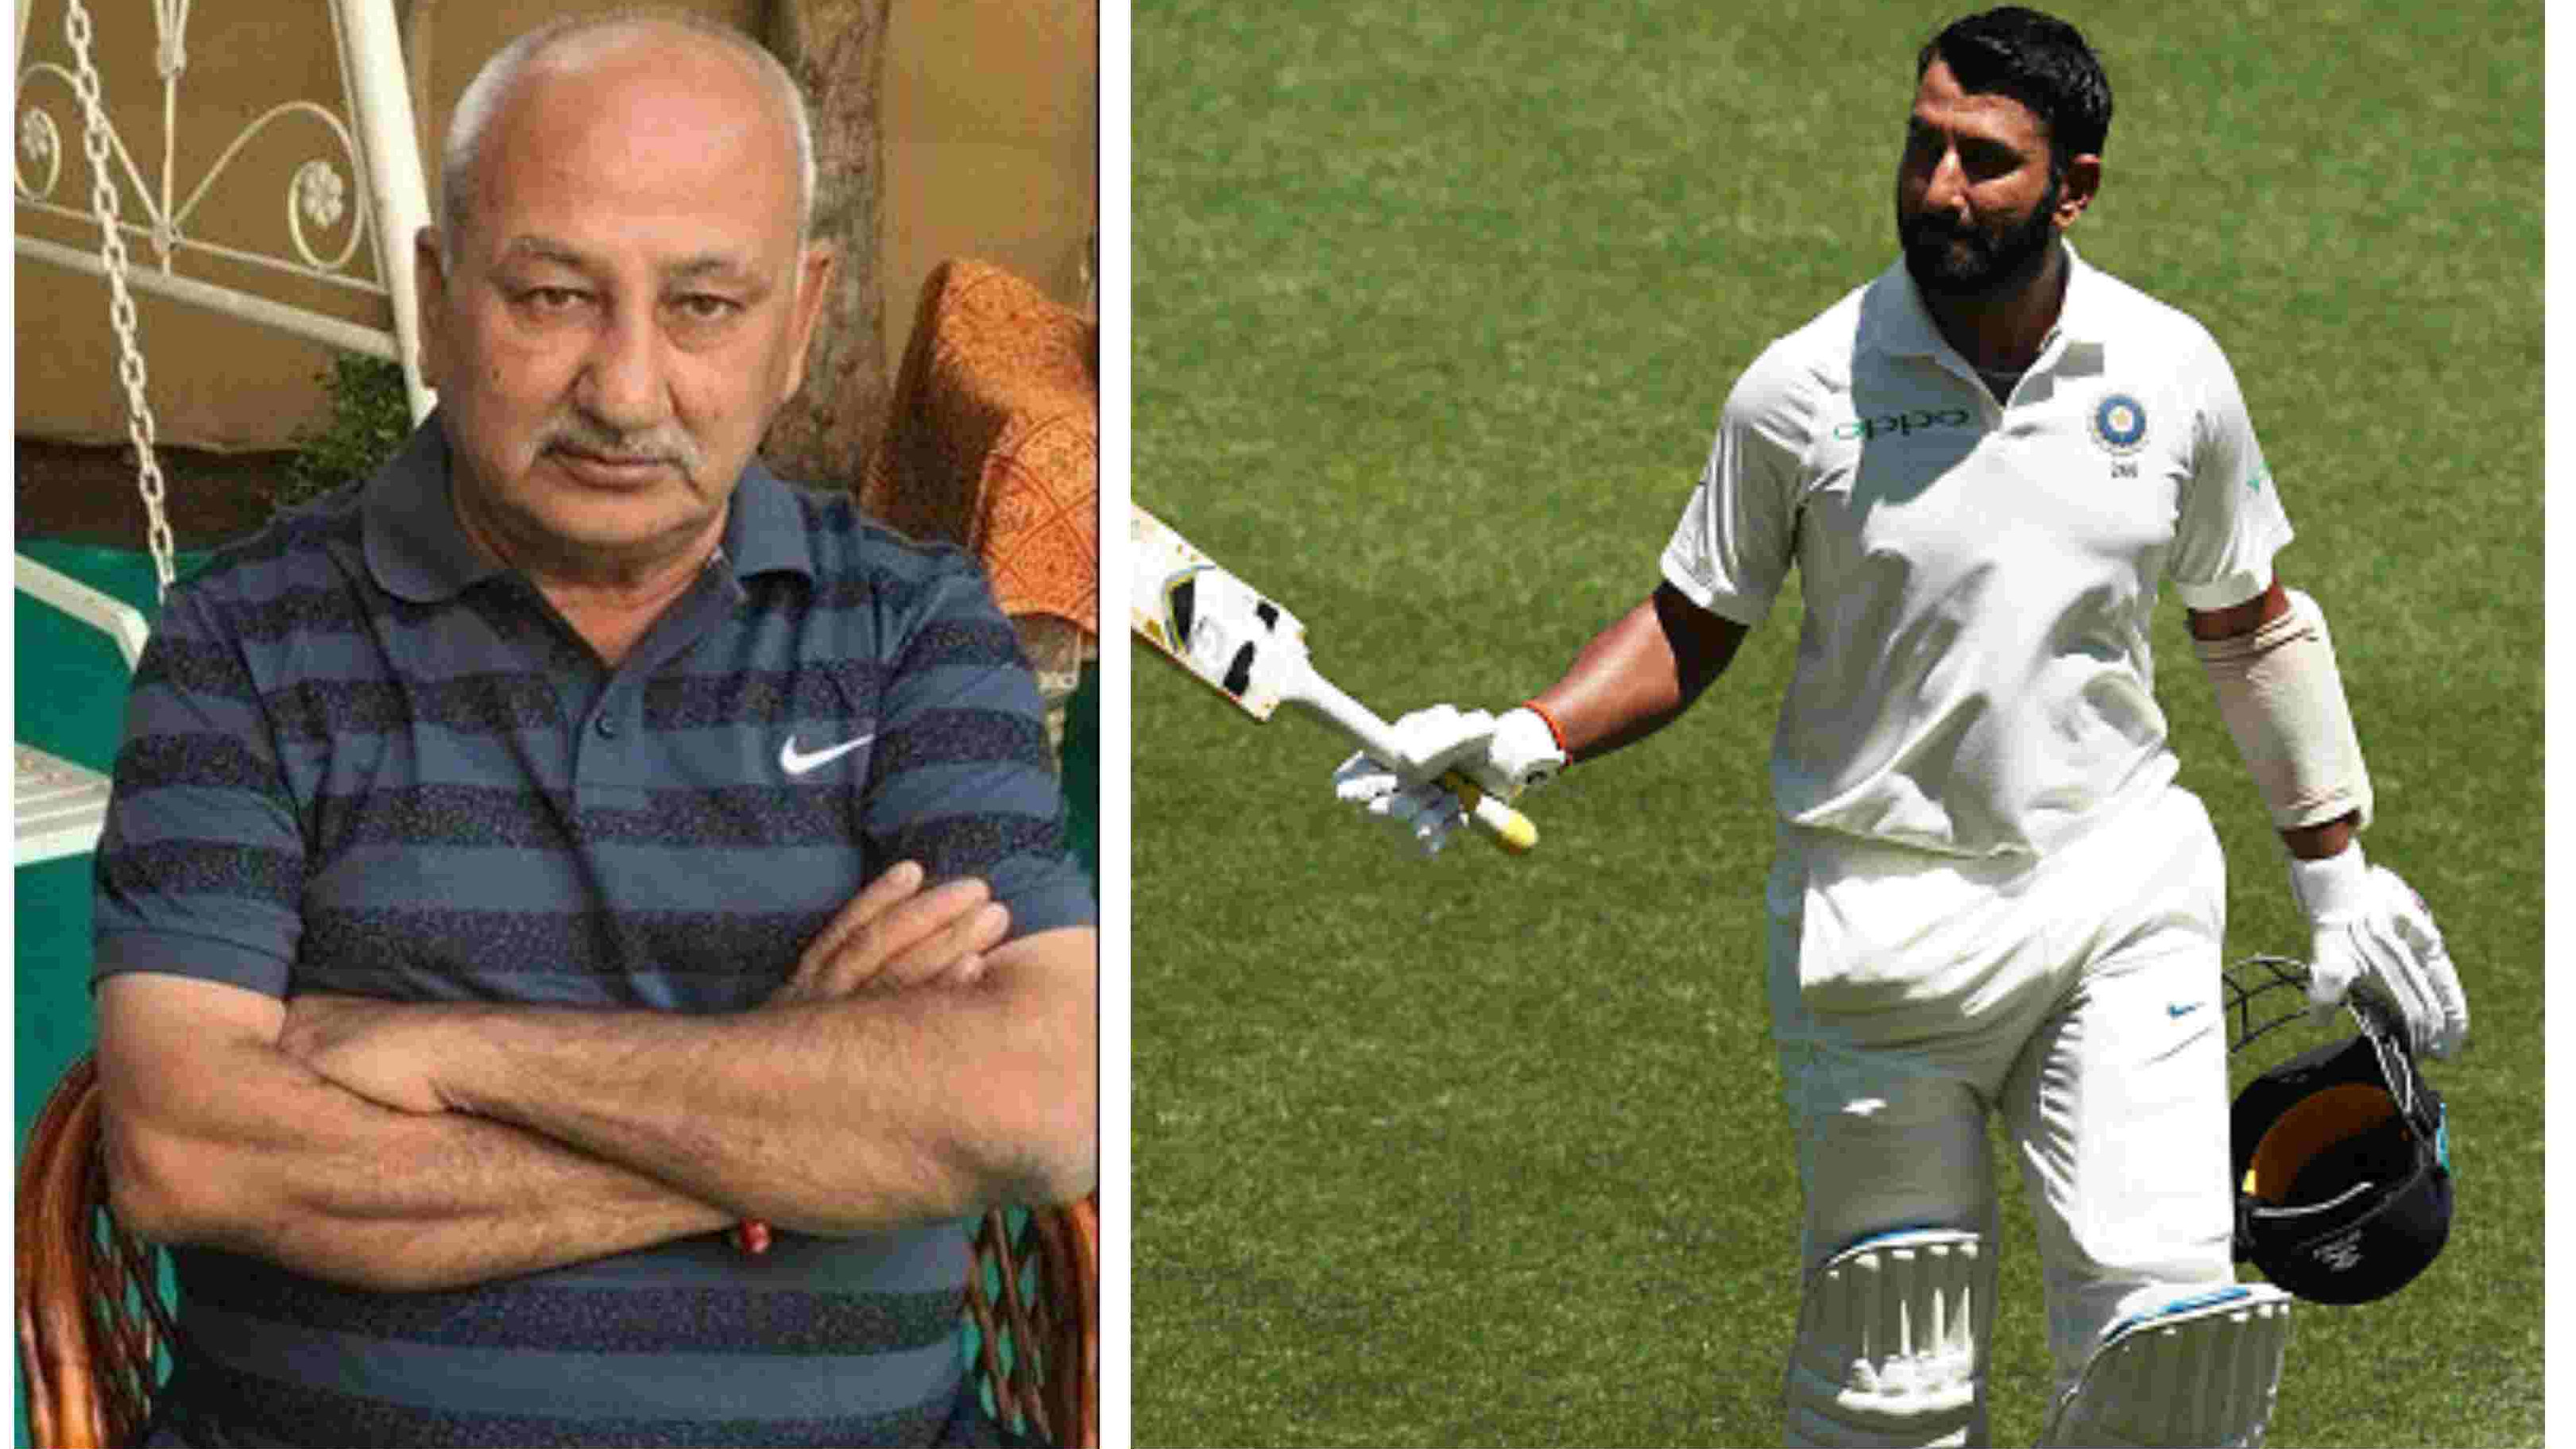 AUS v IND 2018-19: Pujara's father unable to watch his son's Sydney masterclass owing to a heart procedure